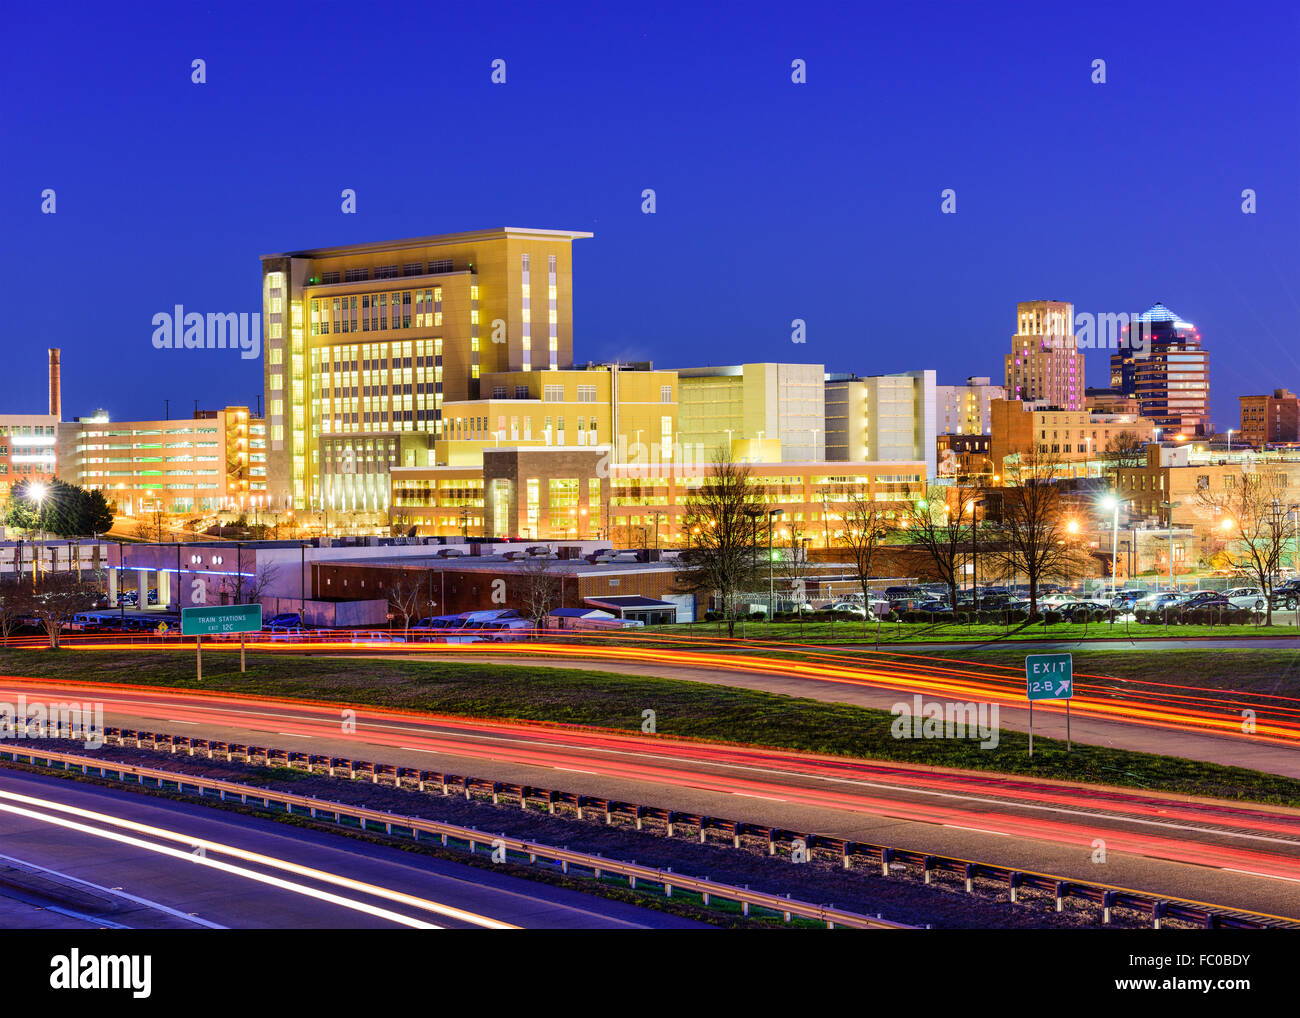 Durham, North Carolina, USA downtown city skyline. - Stock Image